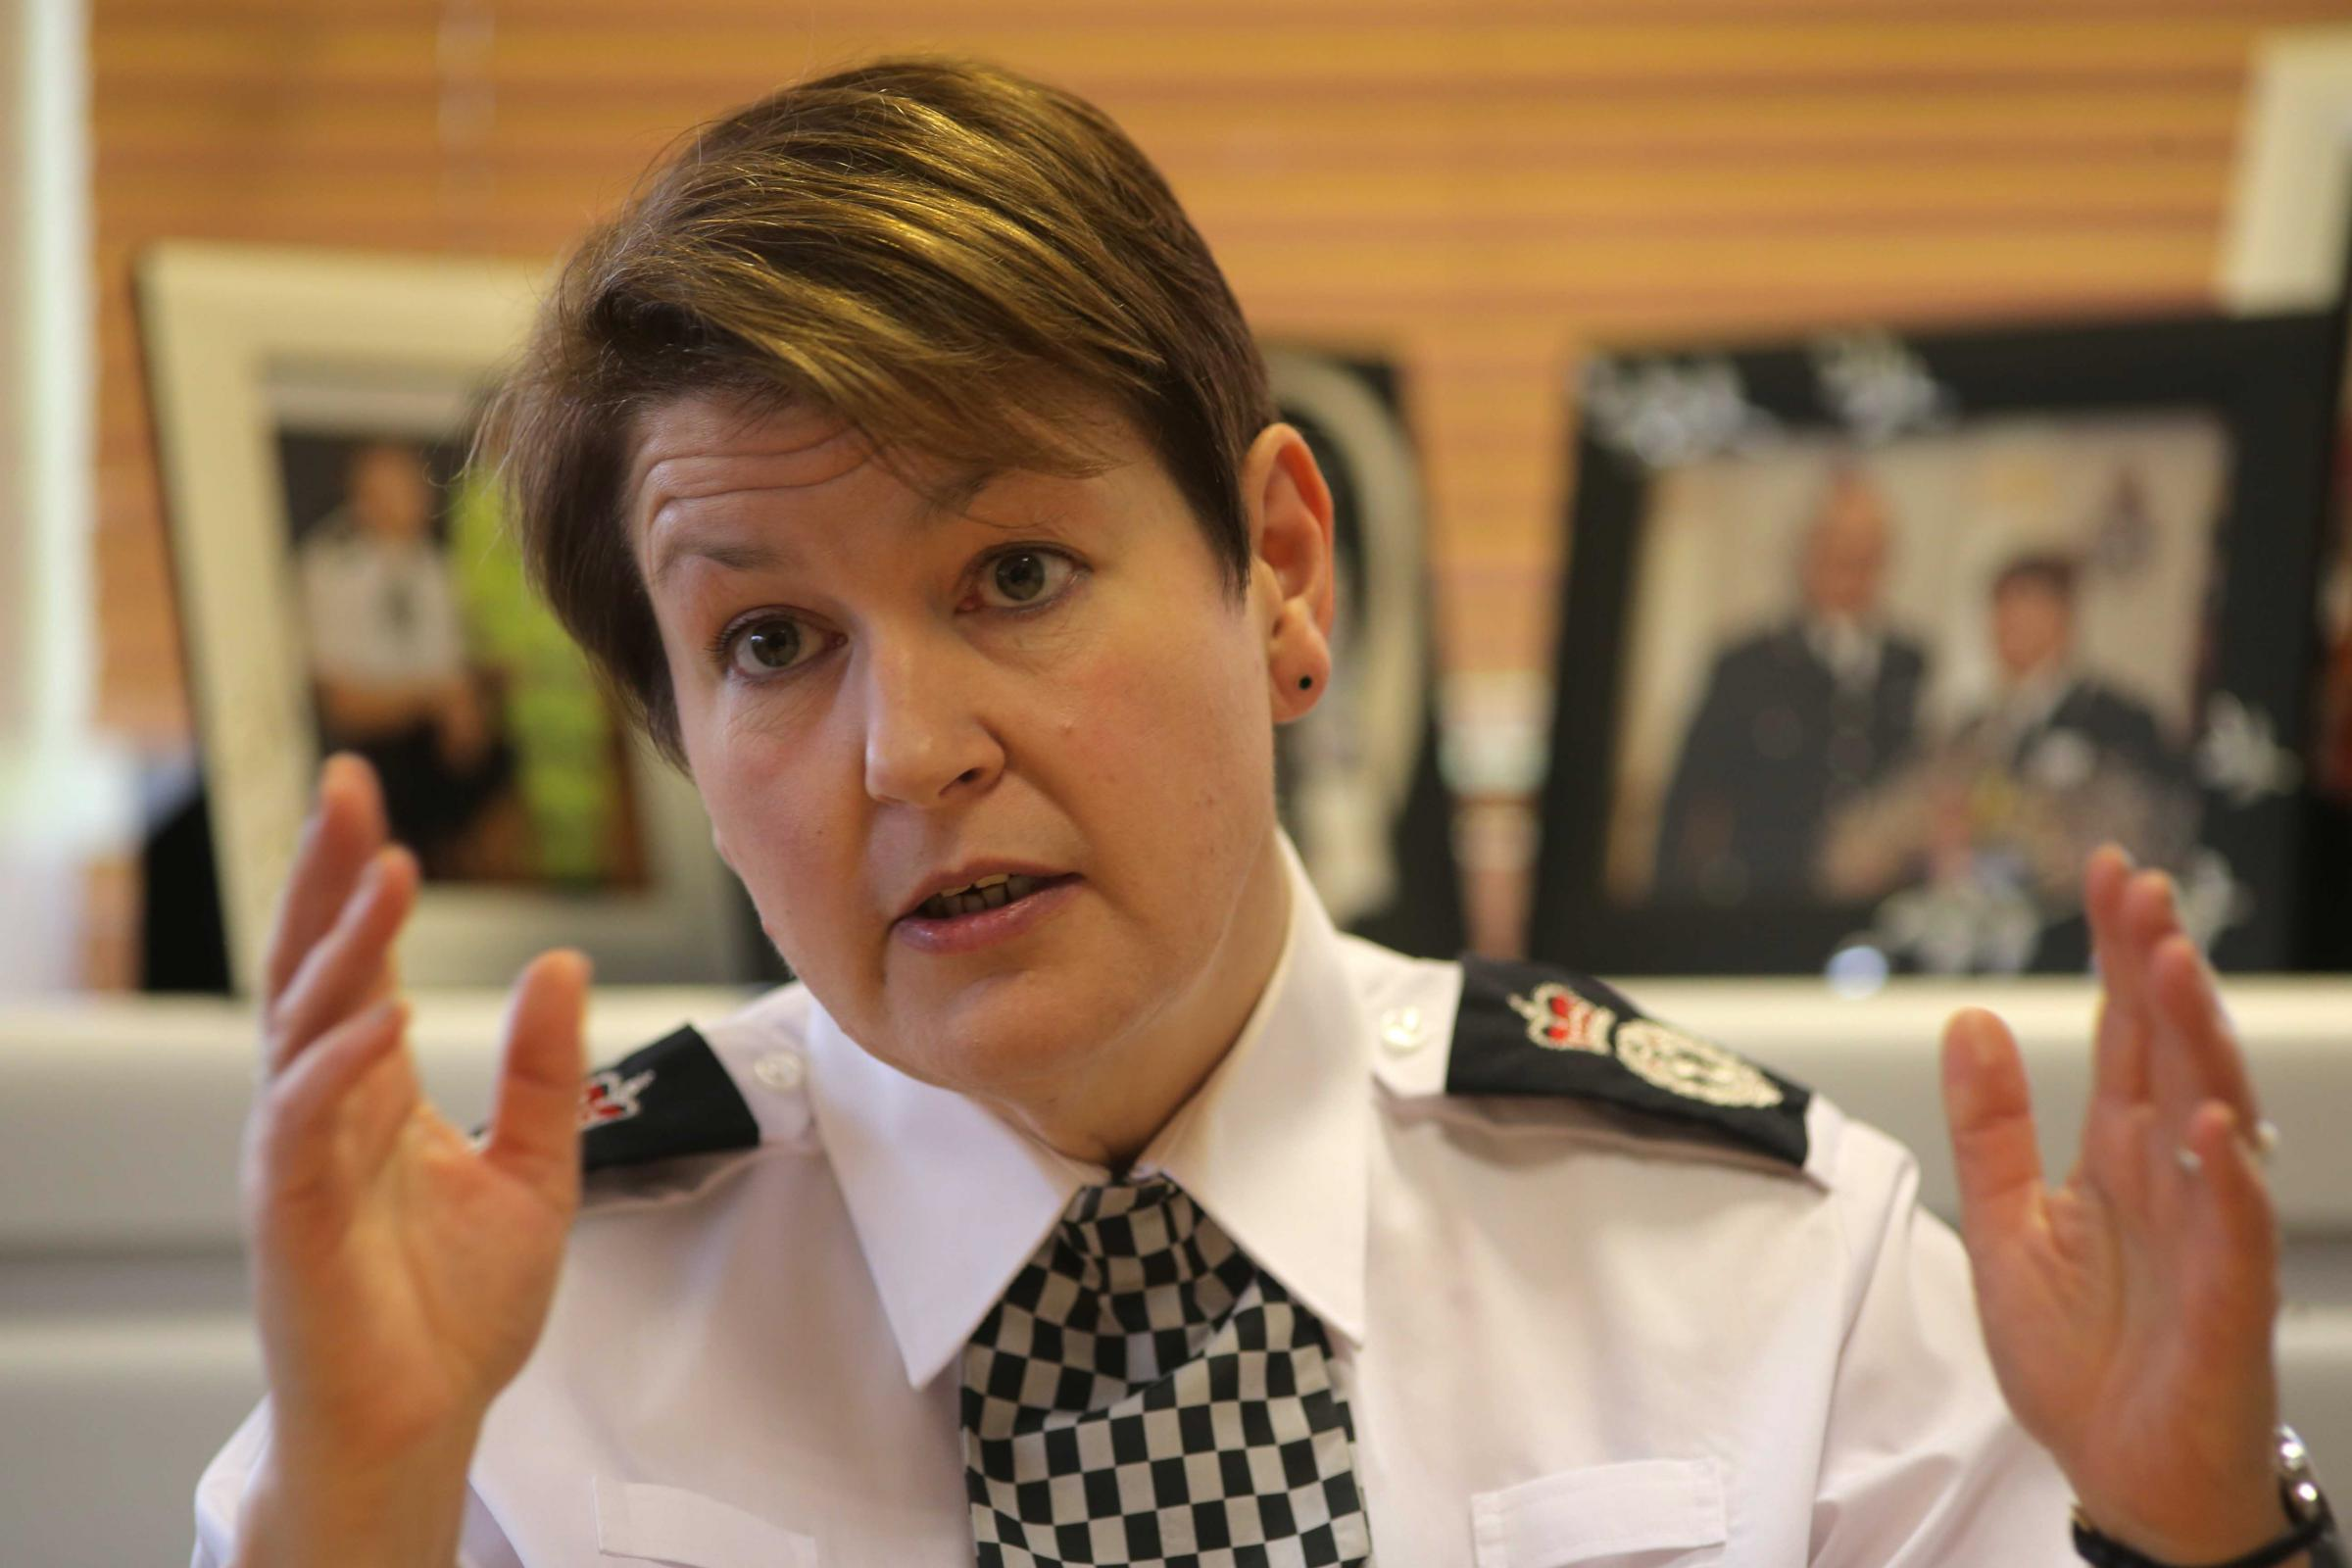 Cleveland Chief Constable Jacqui Cheer.